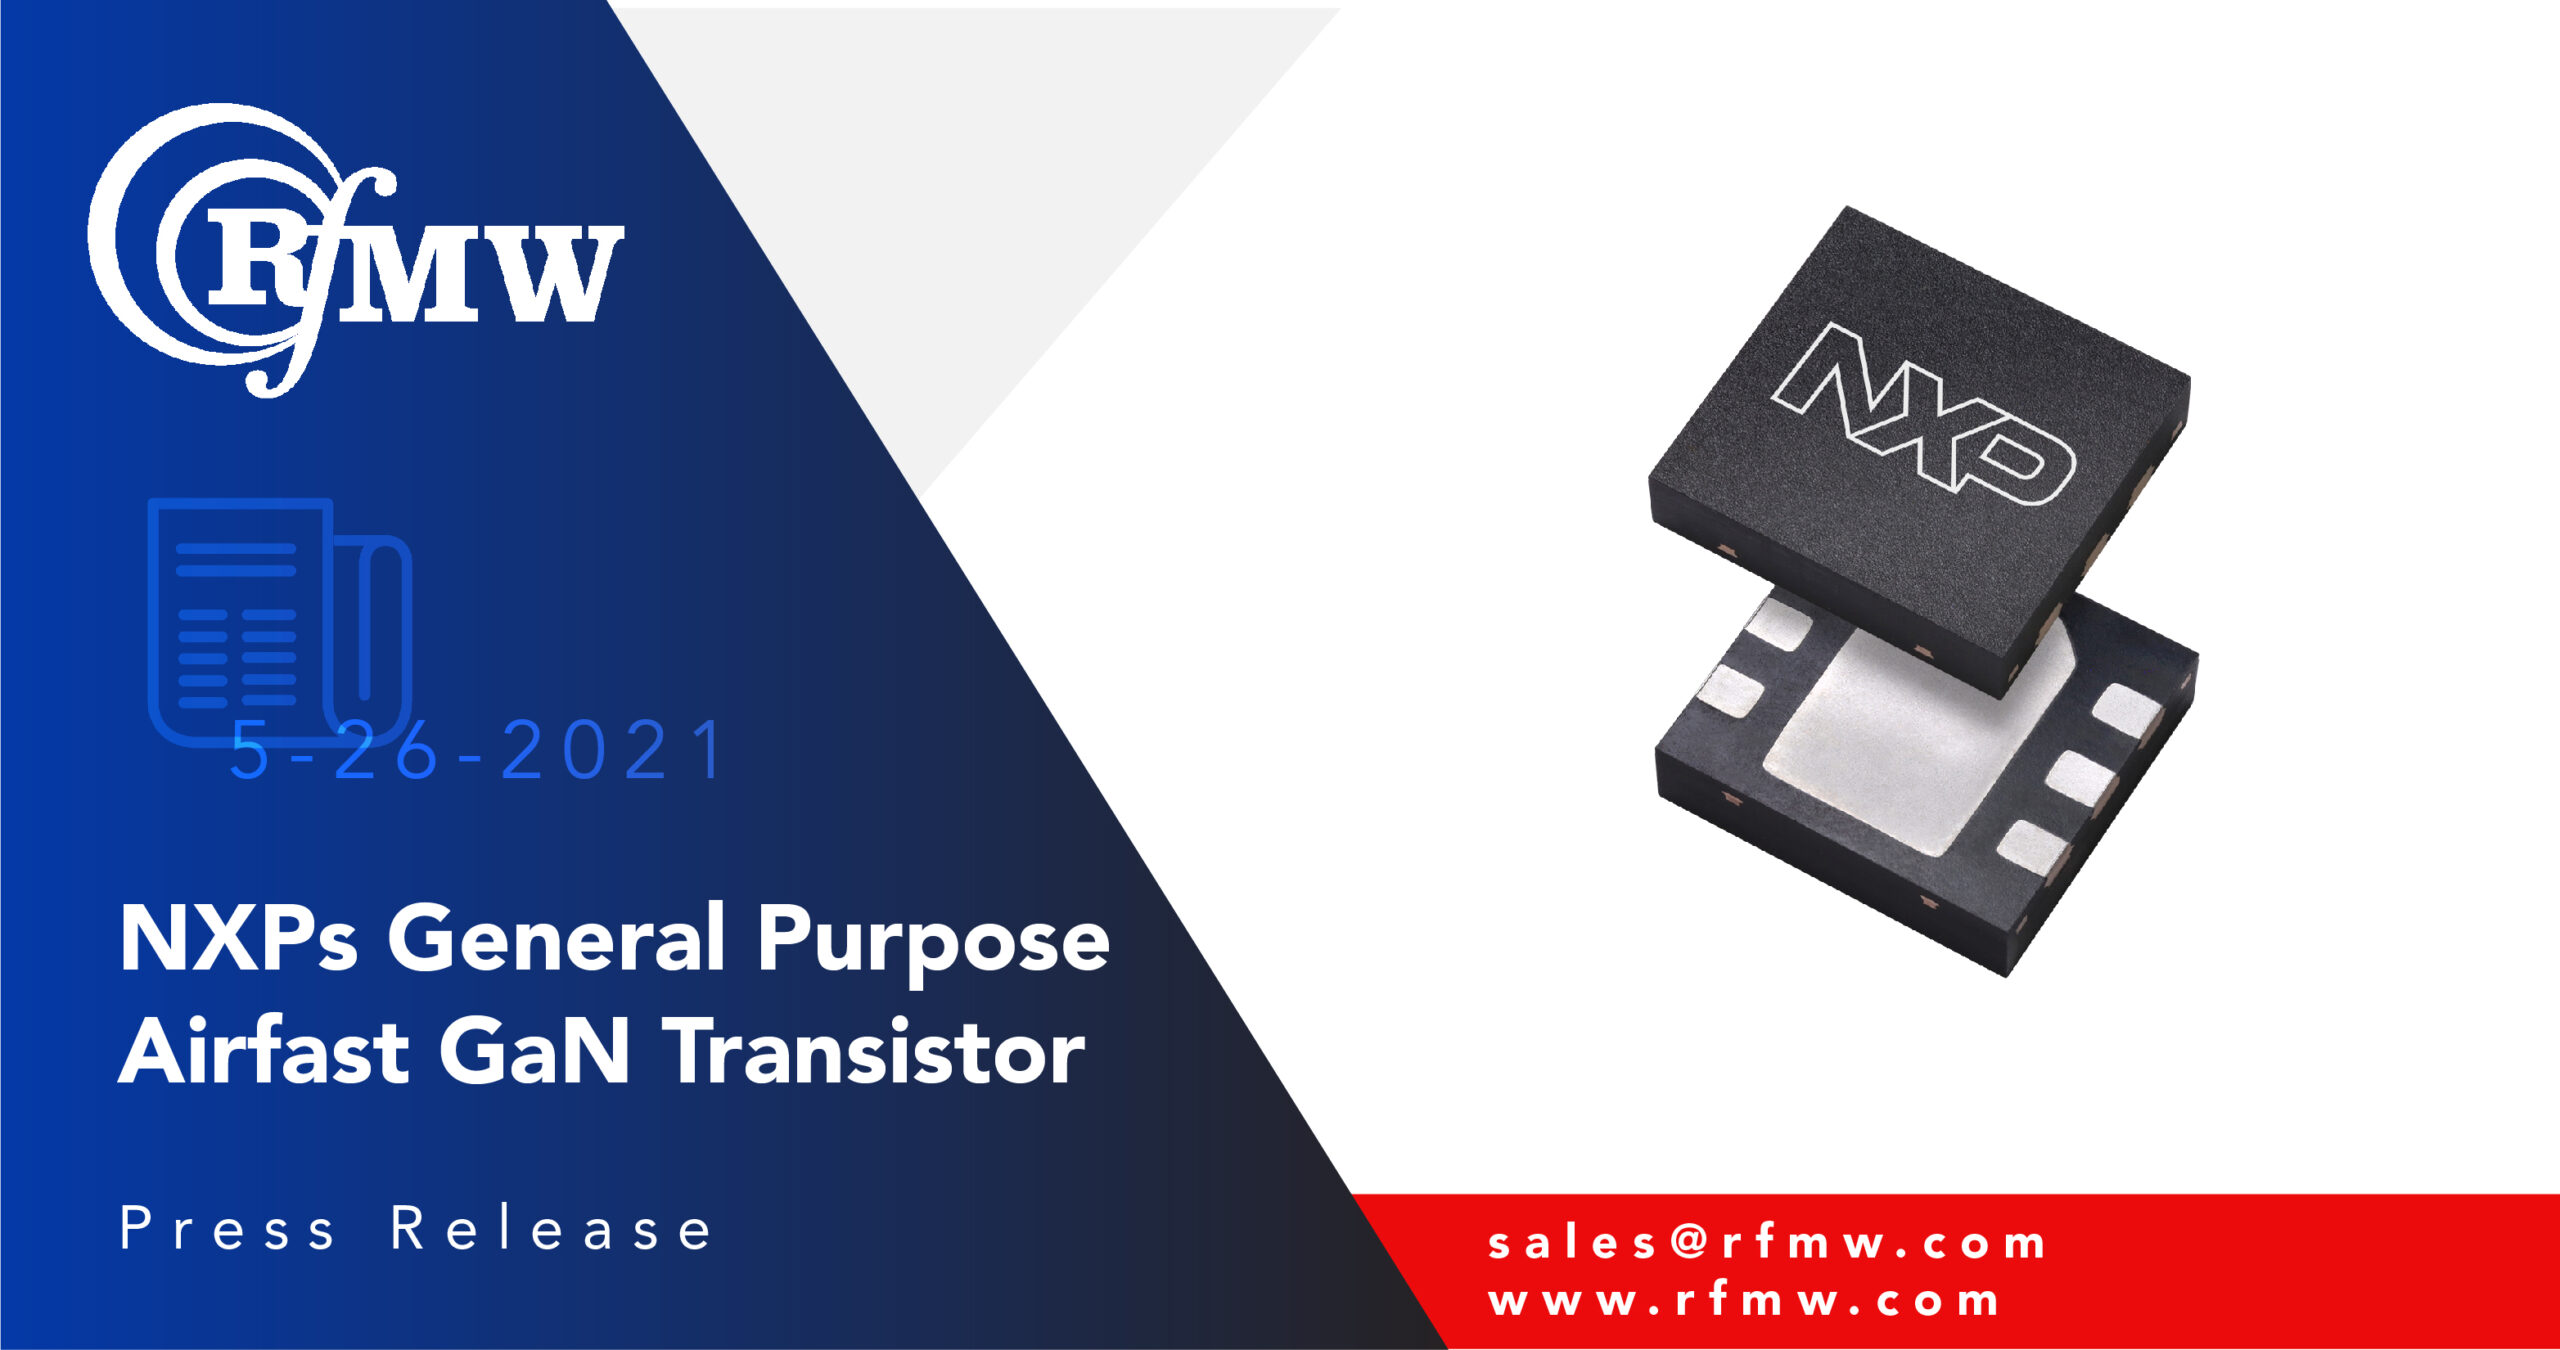 NXP's A3G26D055NT4 GaN on SiC discrete RF transistor delivers 55 Watts of peak power from 100 to 2690 MHz